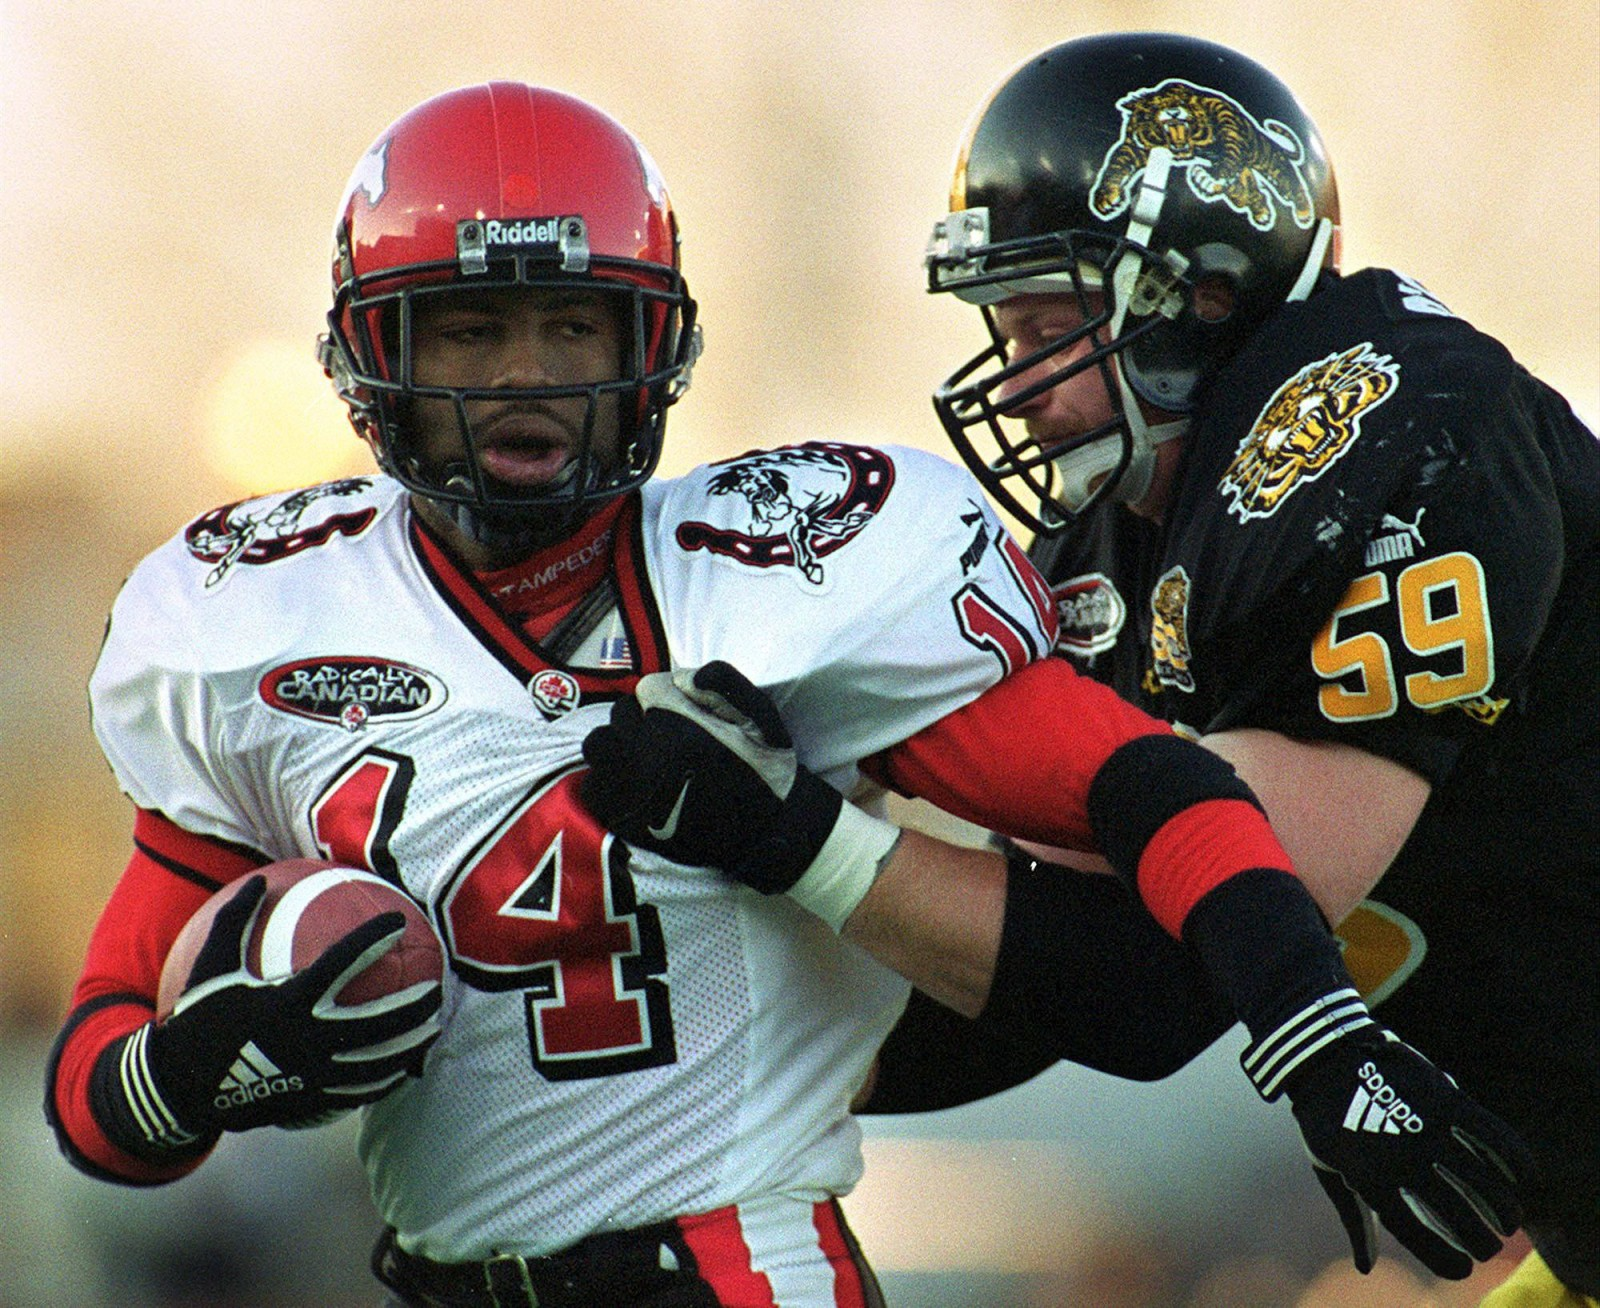 Hamilton Tiger-Cats linebacker Mike O'Shea (59) wraps up Calgary Stampeders runningback Rock Preston (14) during first half CFL action in Hamilton on Sunday Nov. 5, 2000. (CP PHOTO/Frank Gunn)